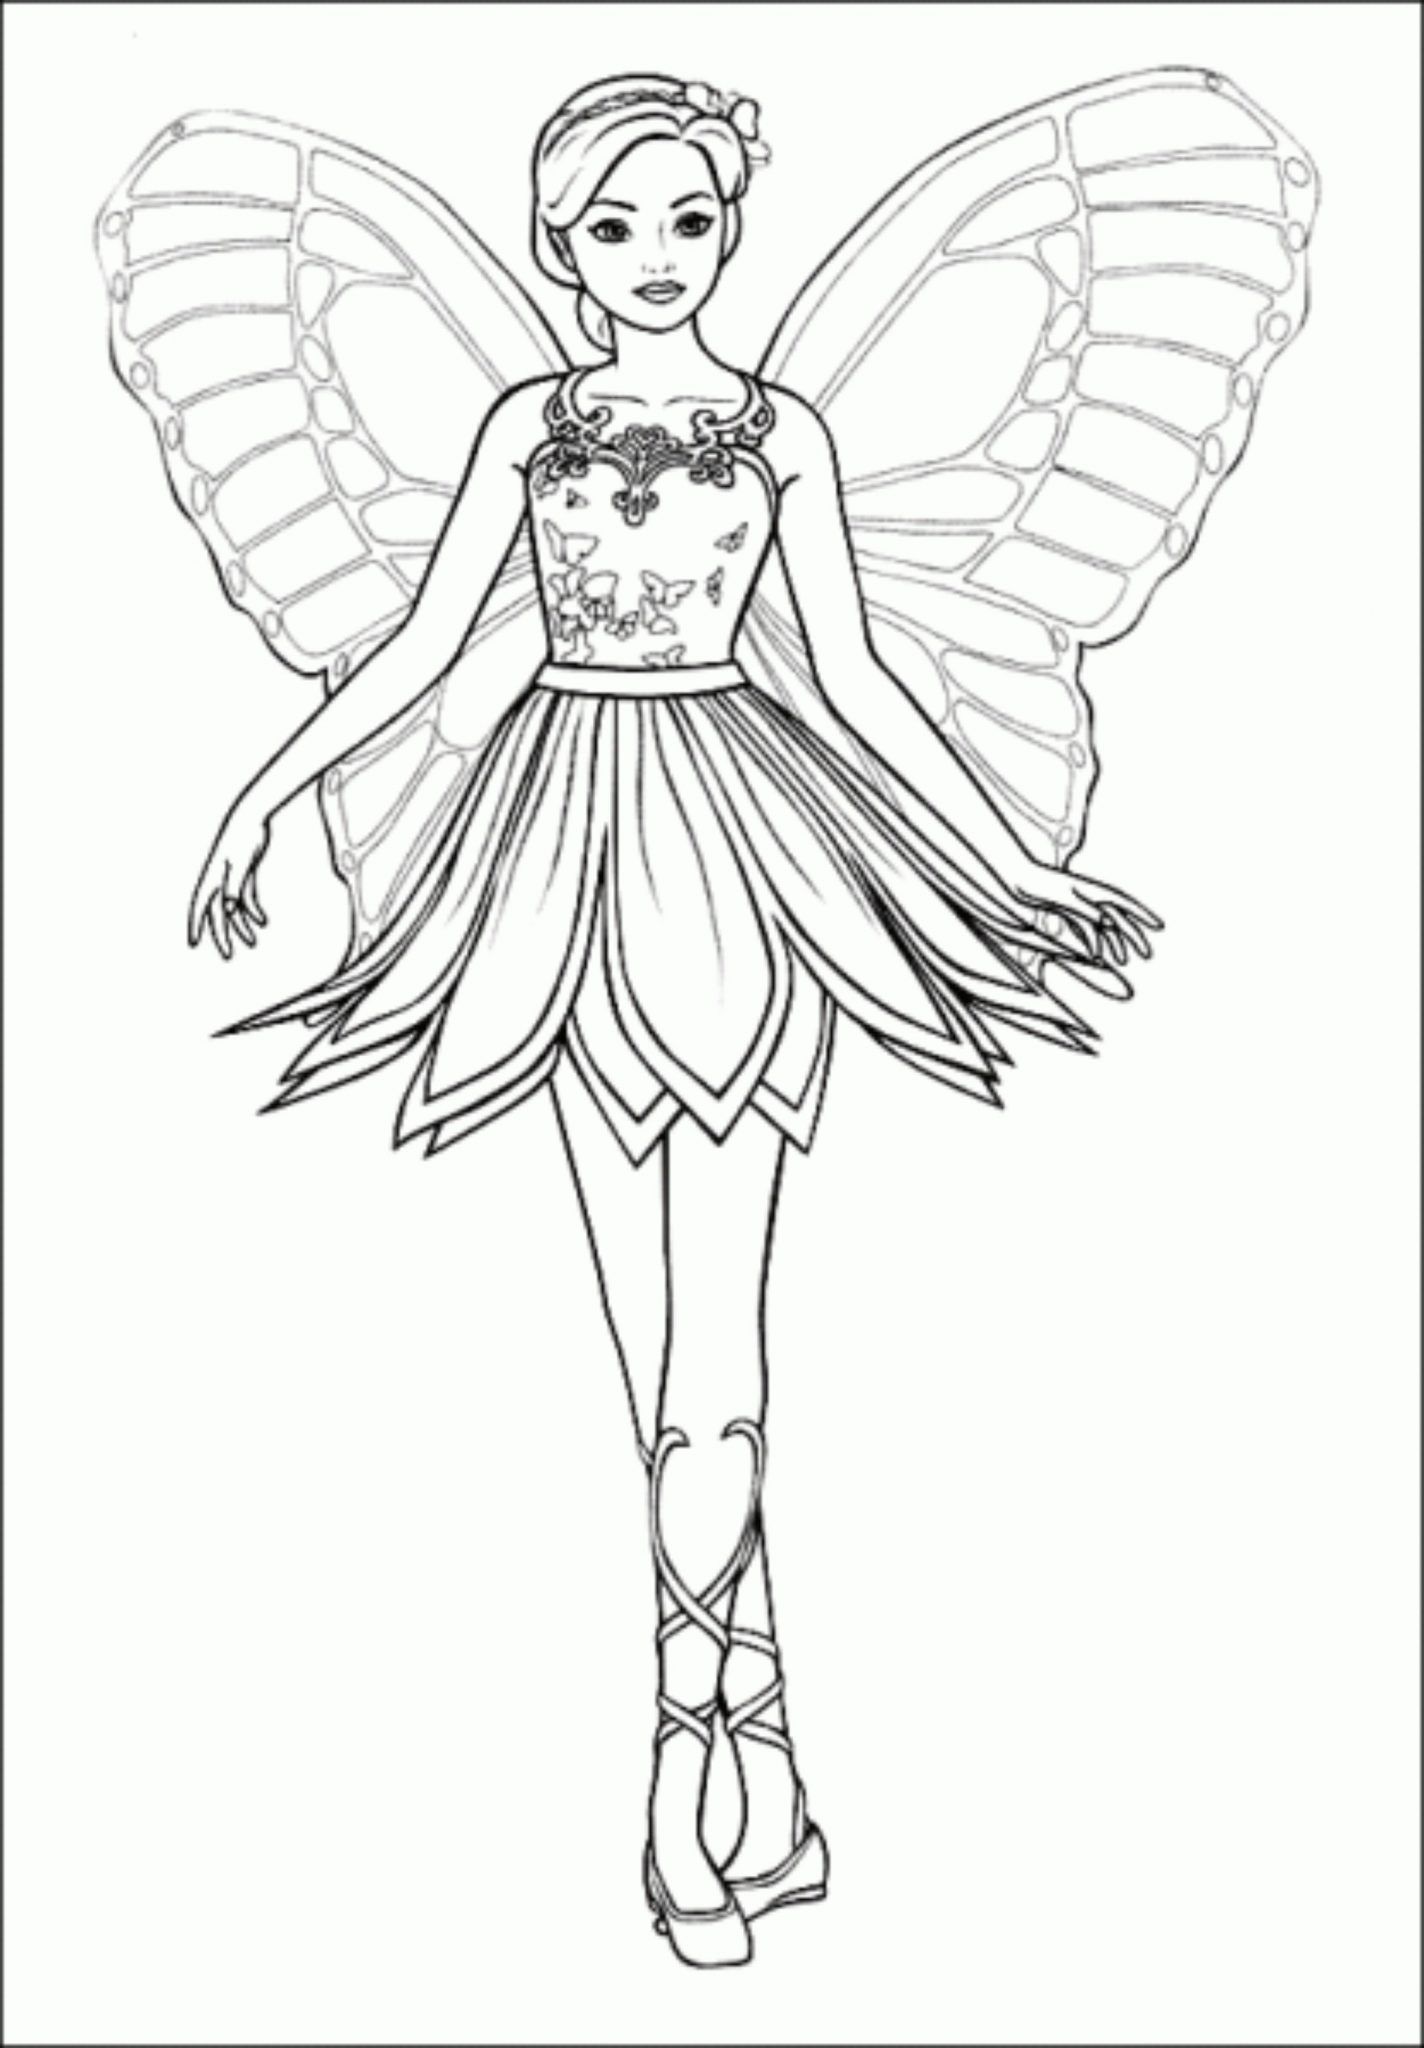 Barbie Princess Coloring Pages Bestappsforkids